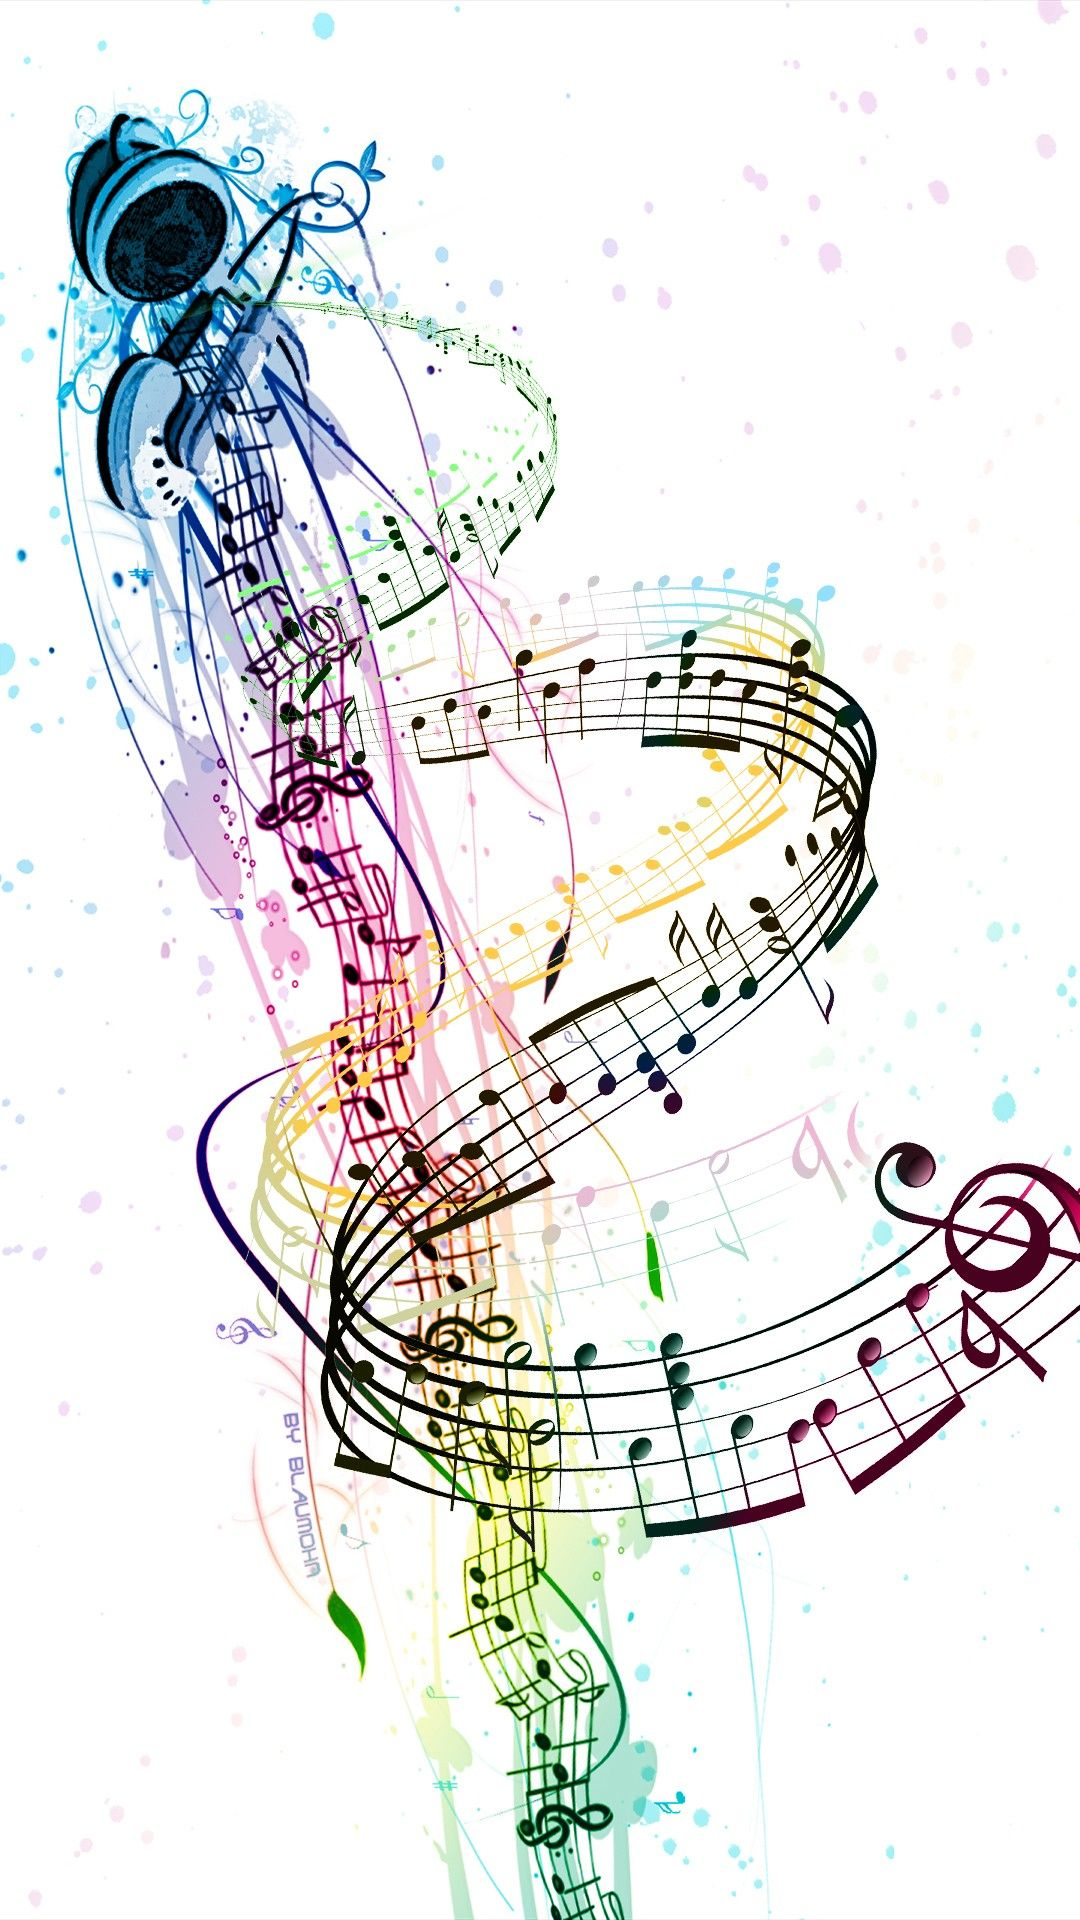 Pin By Amy Christian On Nov 18th Iphone Wallpaper Music Music Notes Background Music Wallpaper